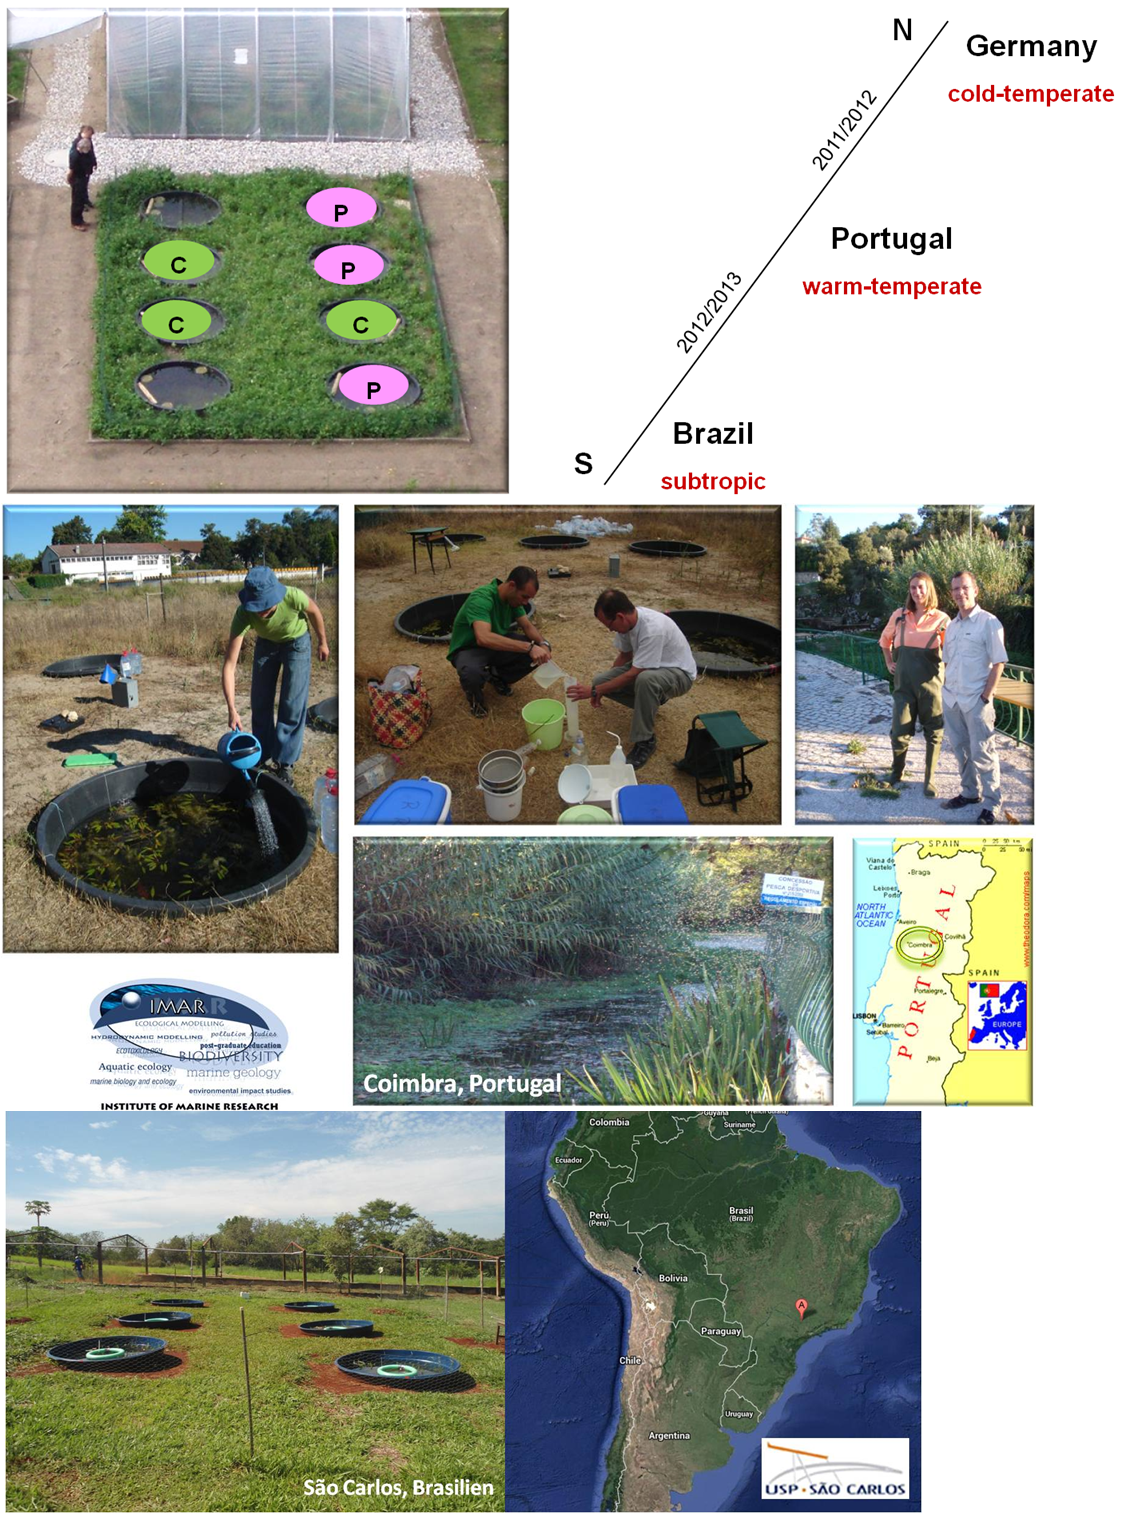 mesocosm facilities in Germany, Portugal & Brazil